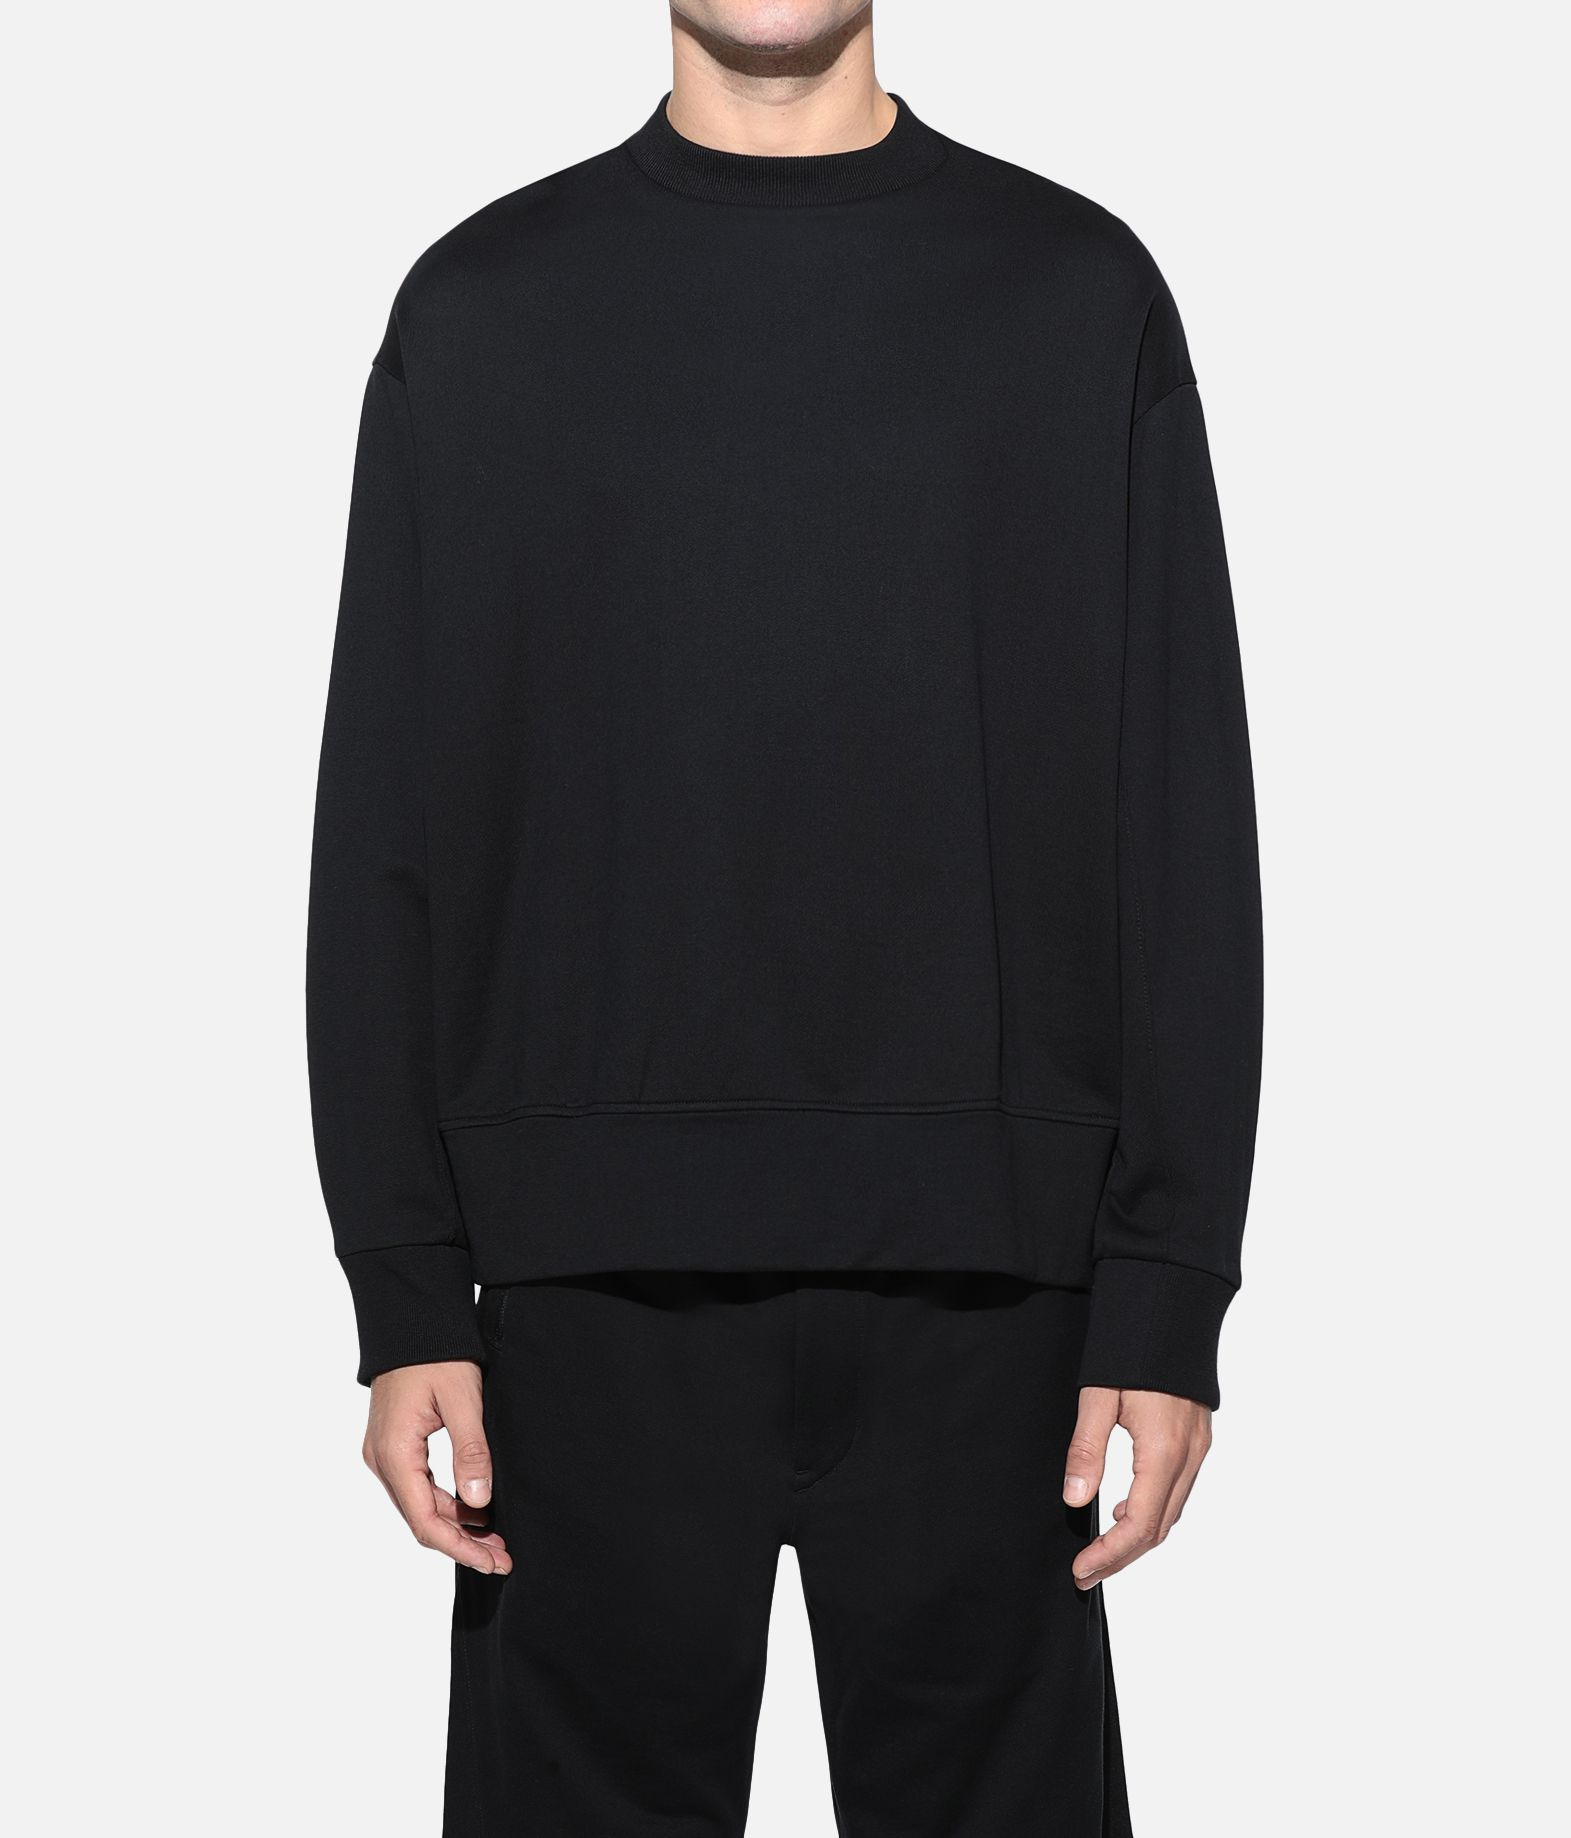 Y-3 Y-3 Signature Graphic Sweatshirt Sweatshirt Man r